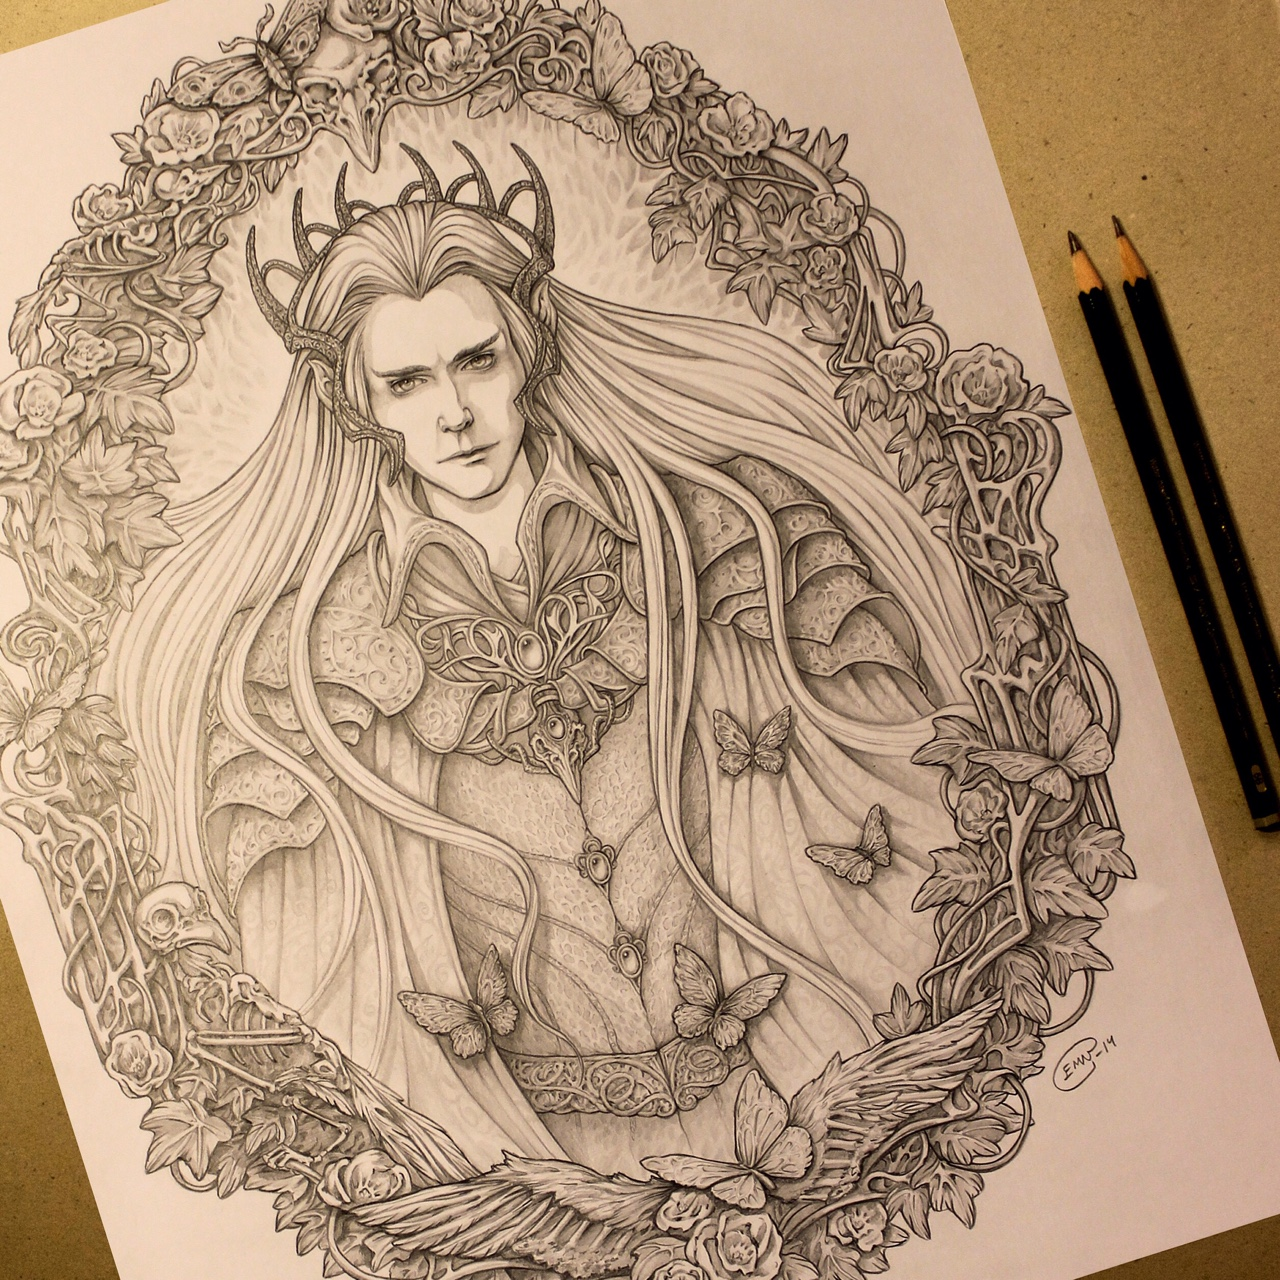 I loved the new #BOTFA trailer! I made this Thranduil fan art to celebrate. :)